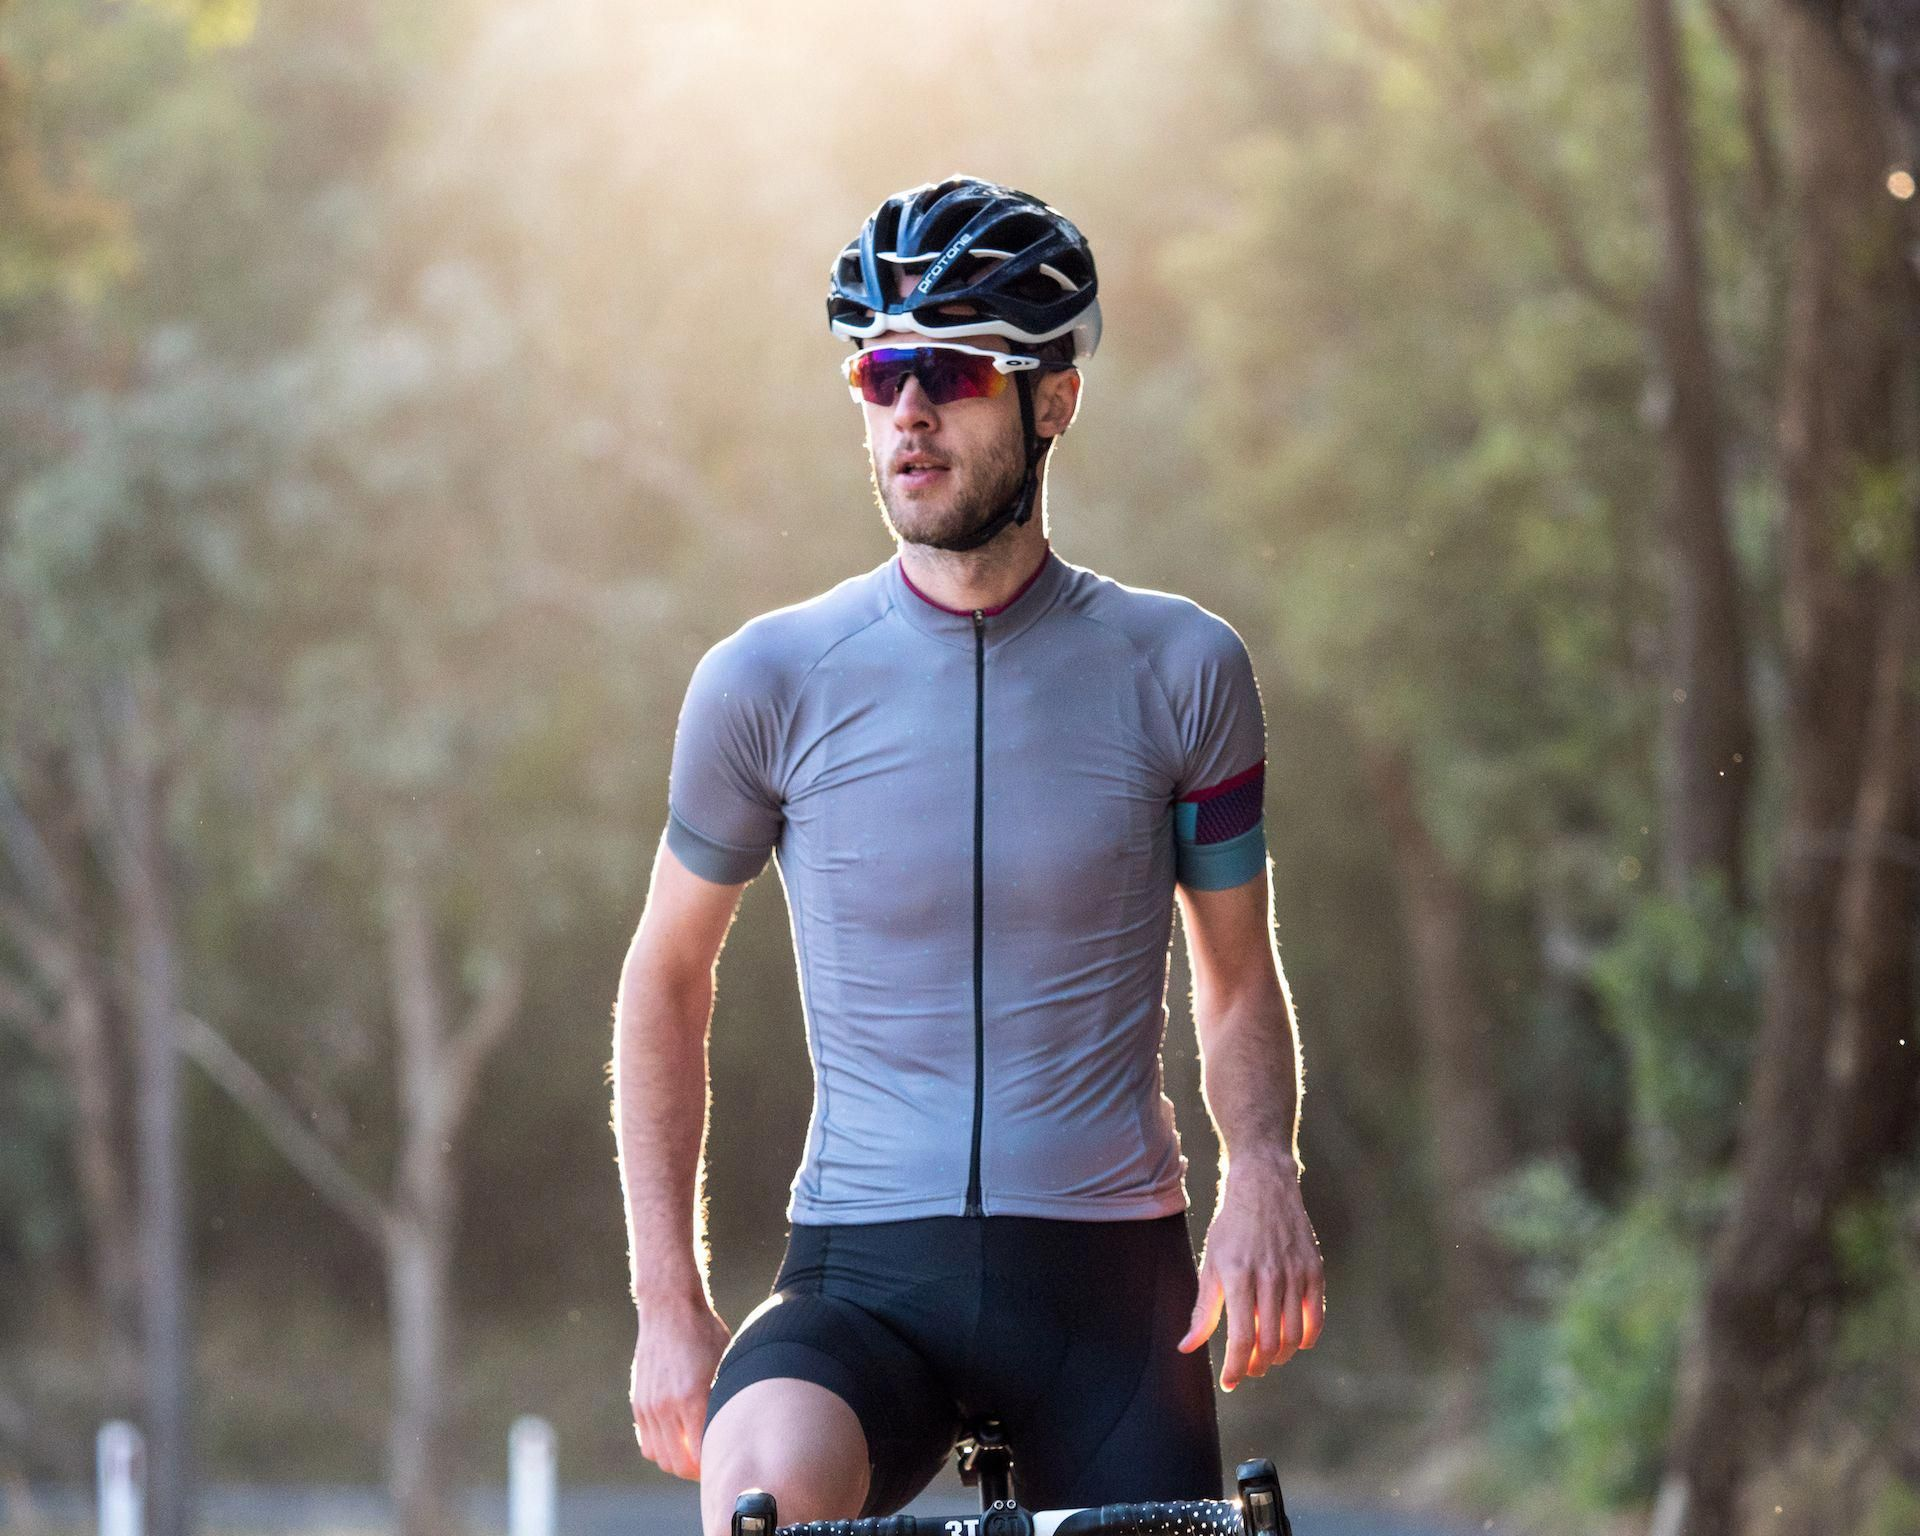 Cycling Apparel Review Of Ornot Kit New House Jersey